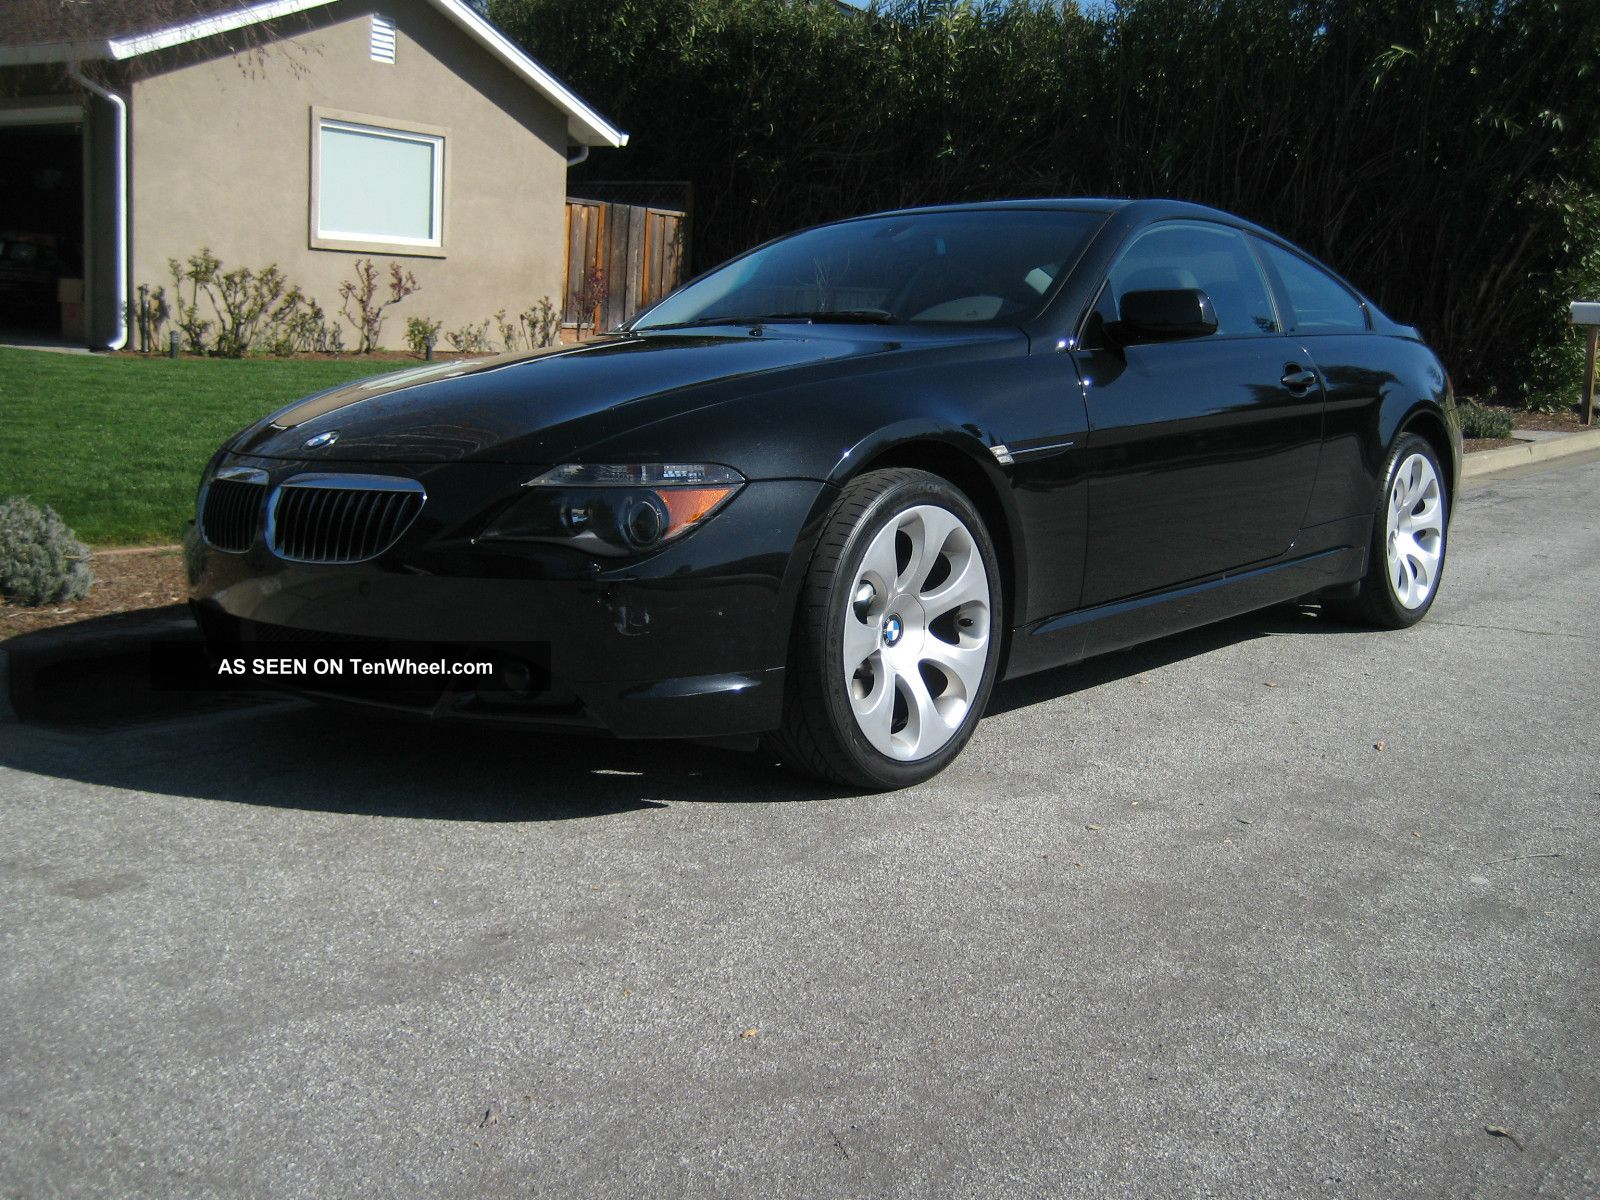 Bmw Ci Black Sapphire Metallic Lgw on 2005 Bentley Continental Gt Coupe Specs